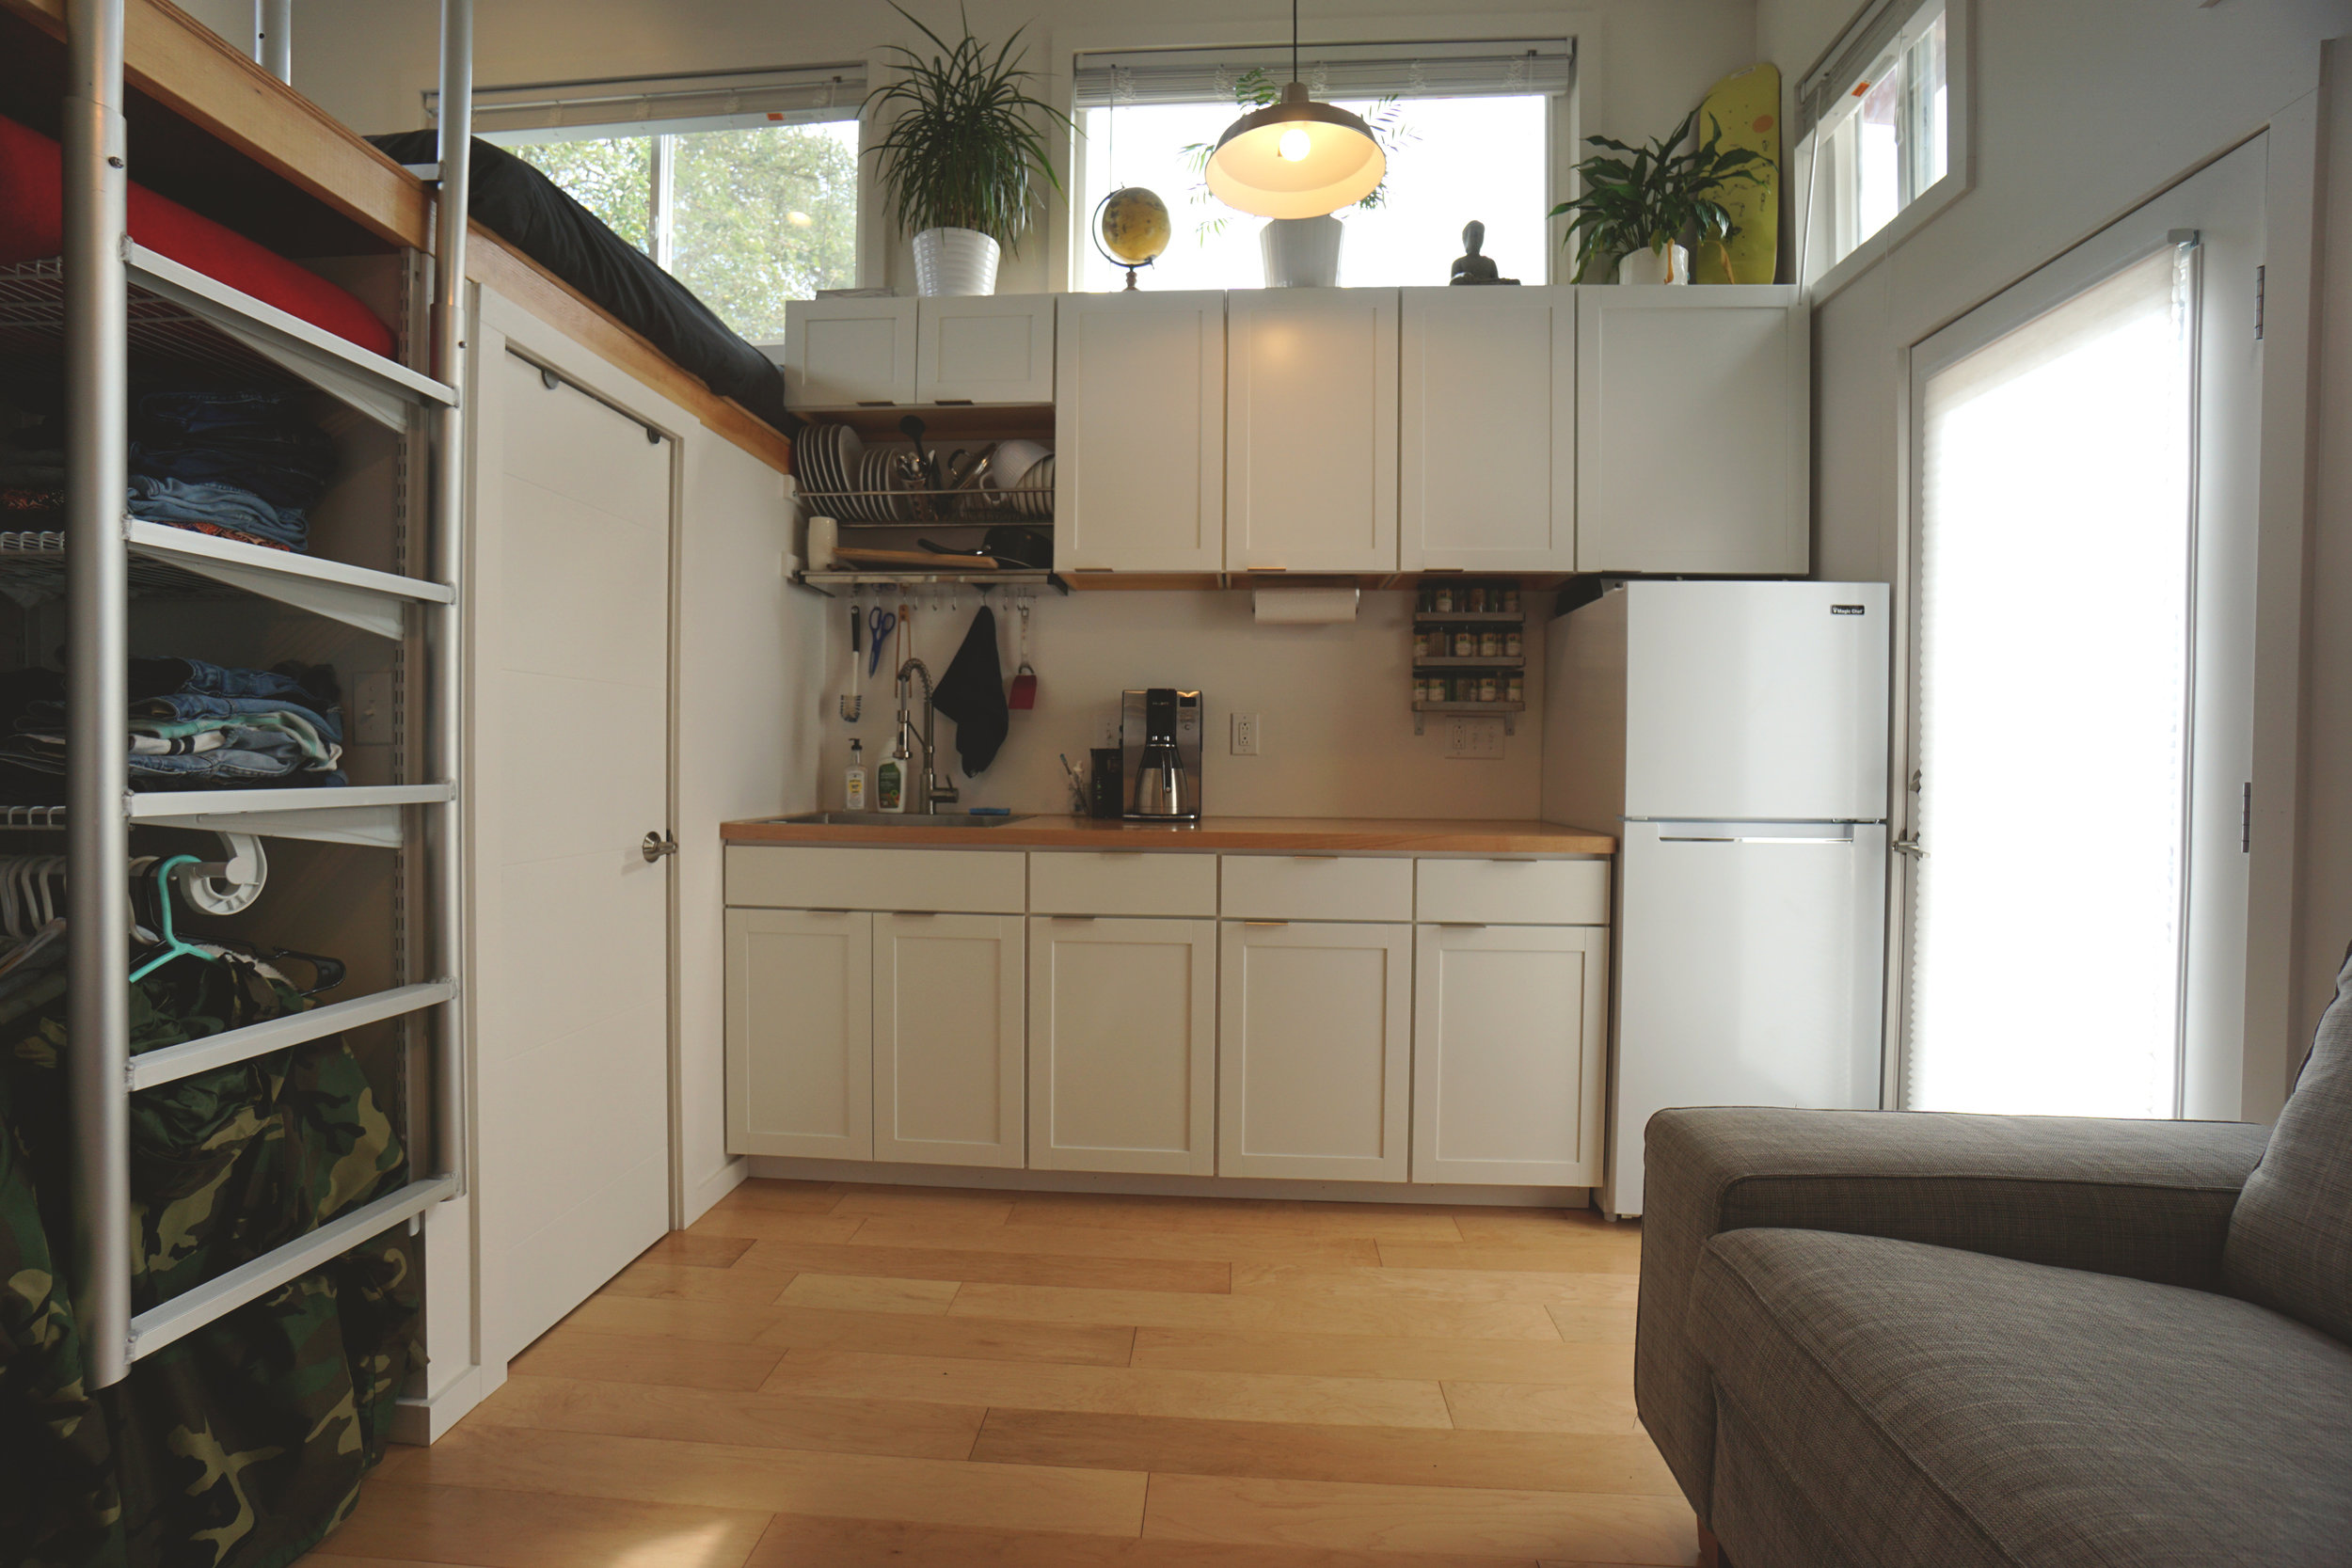 Modern studio kitchen design & install  (Installation of new white shaker cabinets with stainless steel finger pulls, butcher block countertop with deep stainless steel sink and maple floors)